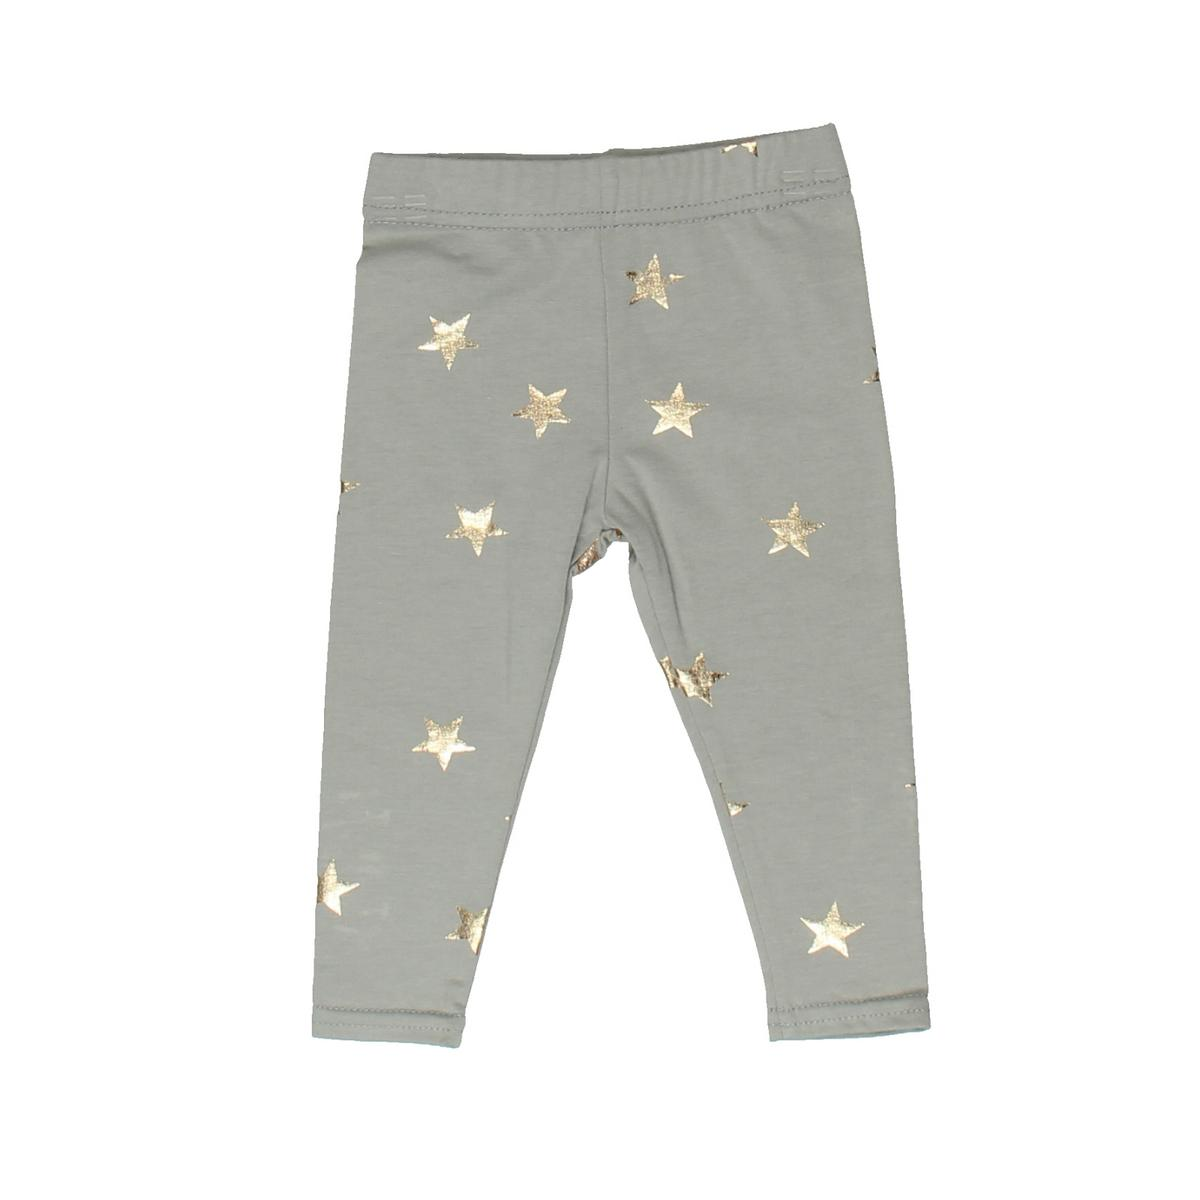 Capelli New York Stars Graphic Metallic Fashion Leggings Bhfo 4385